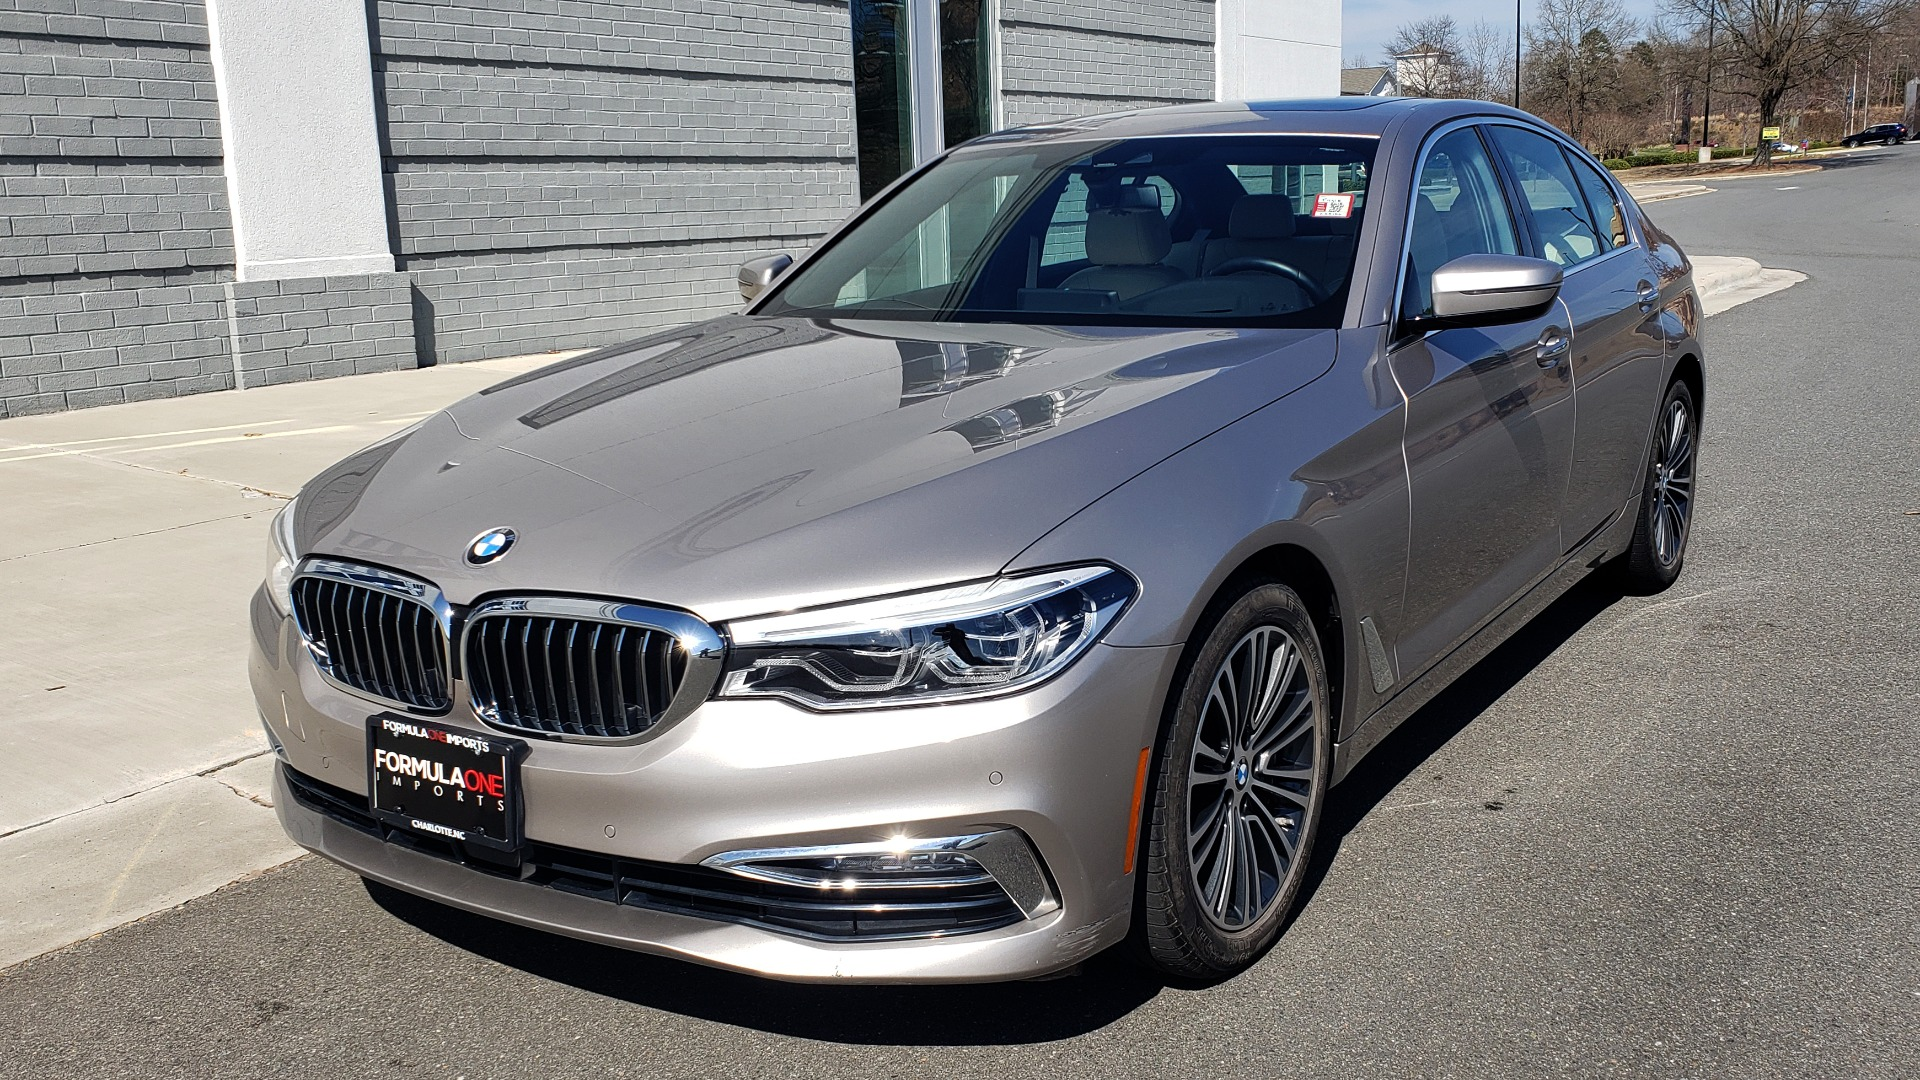 Used 2018 BMW 5 SERIES 540IXDRIVE PREMIUM / DRVR ASST PLUS / LUX PKG / APPLE CARPLAY for sale Sold at Formula Imports in Charlotte NC 28227 1